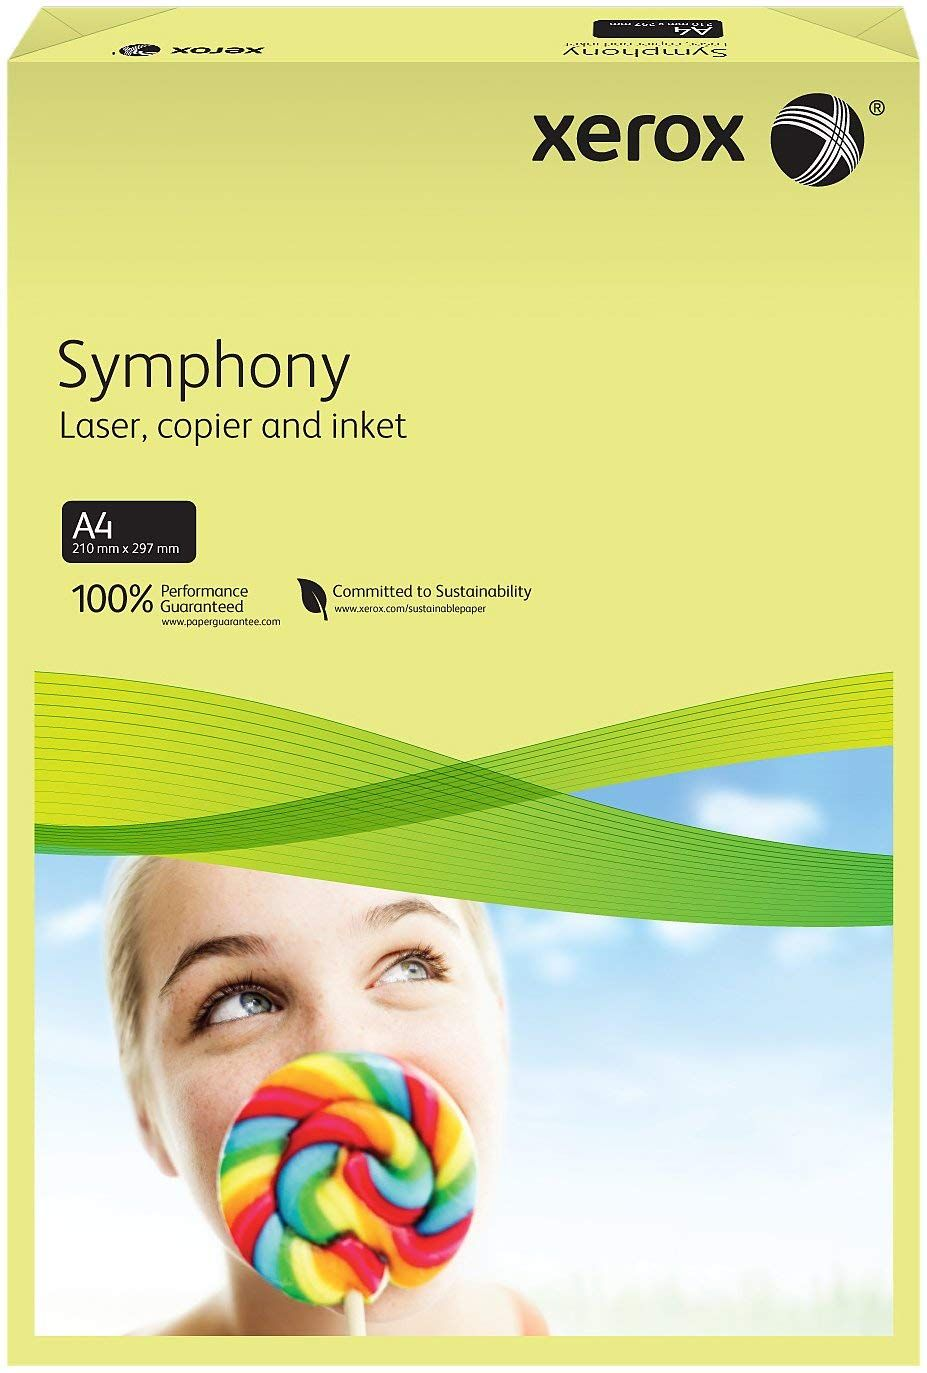 A4 Xerox Symphony Pastel Yellow Paper - 80gsm - 210 x 297mm - Pack of 500